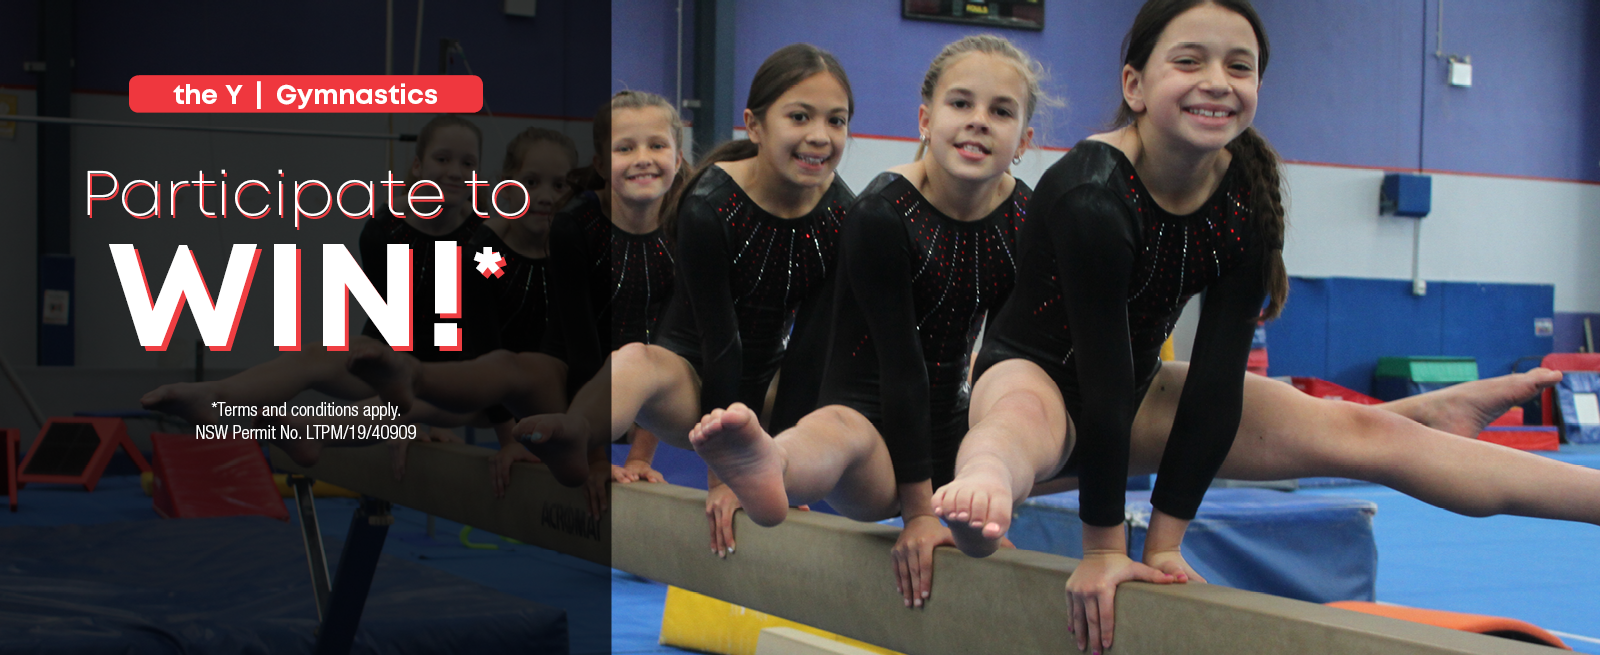 Participate to Win with Gymnastics!